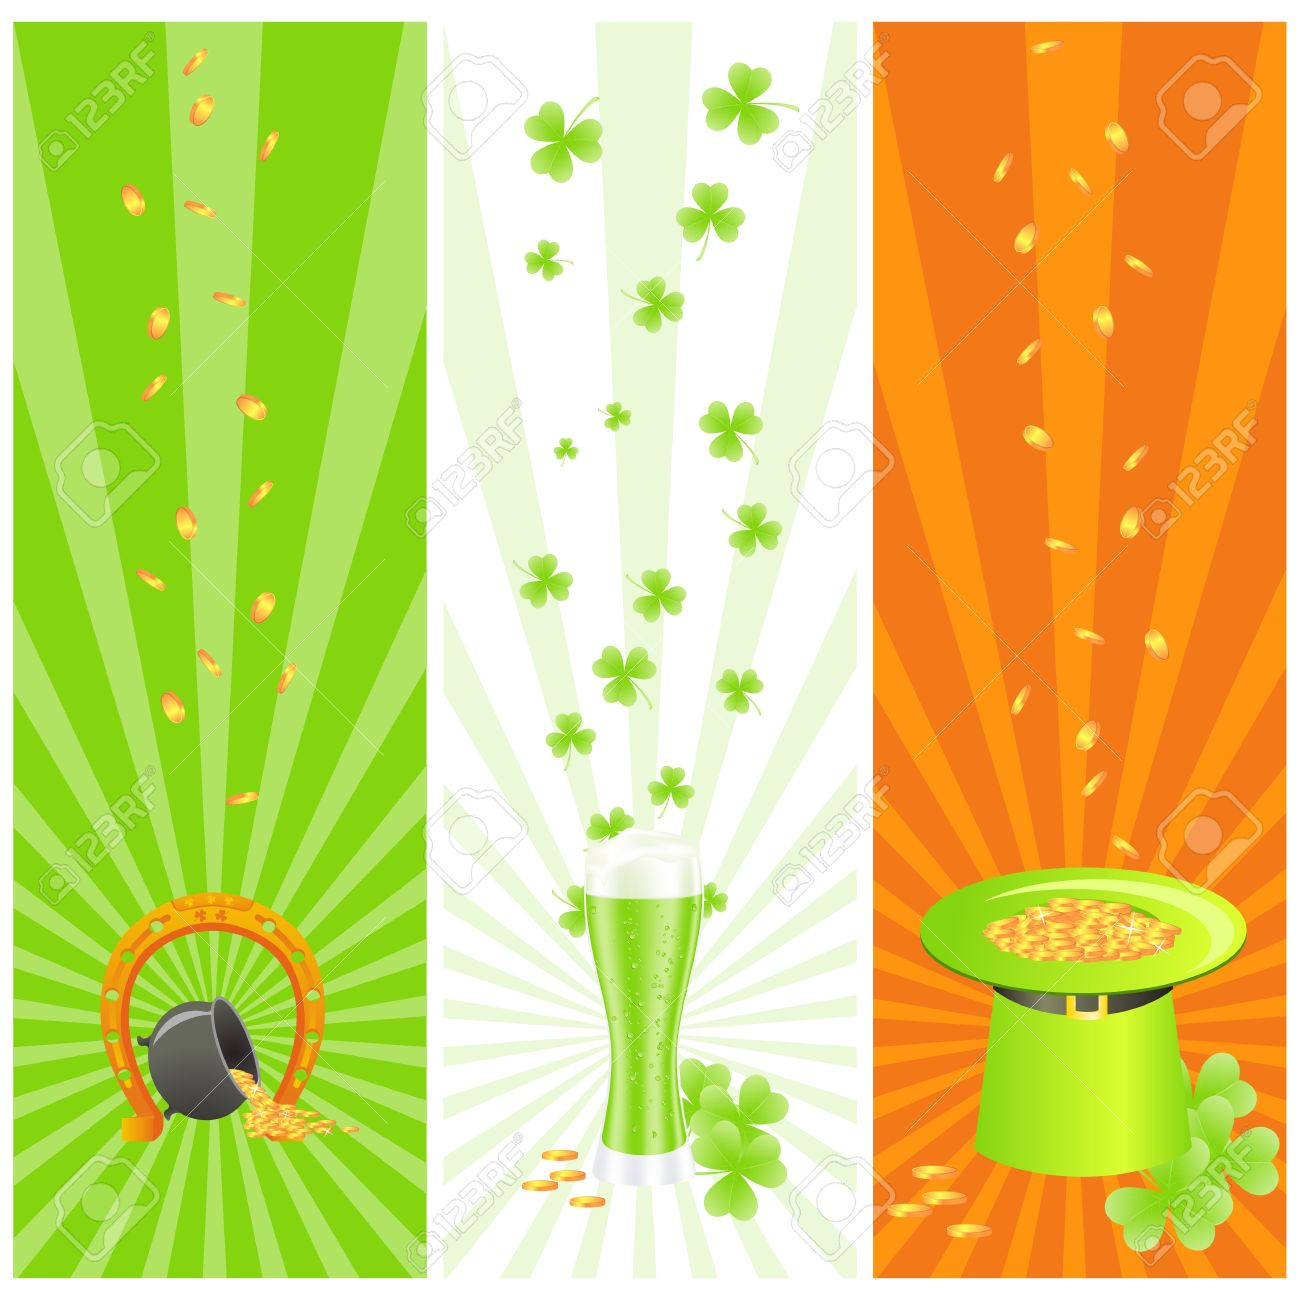 Ireland National Colored Banners With Luck Horseshoe, Treasure.